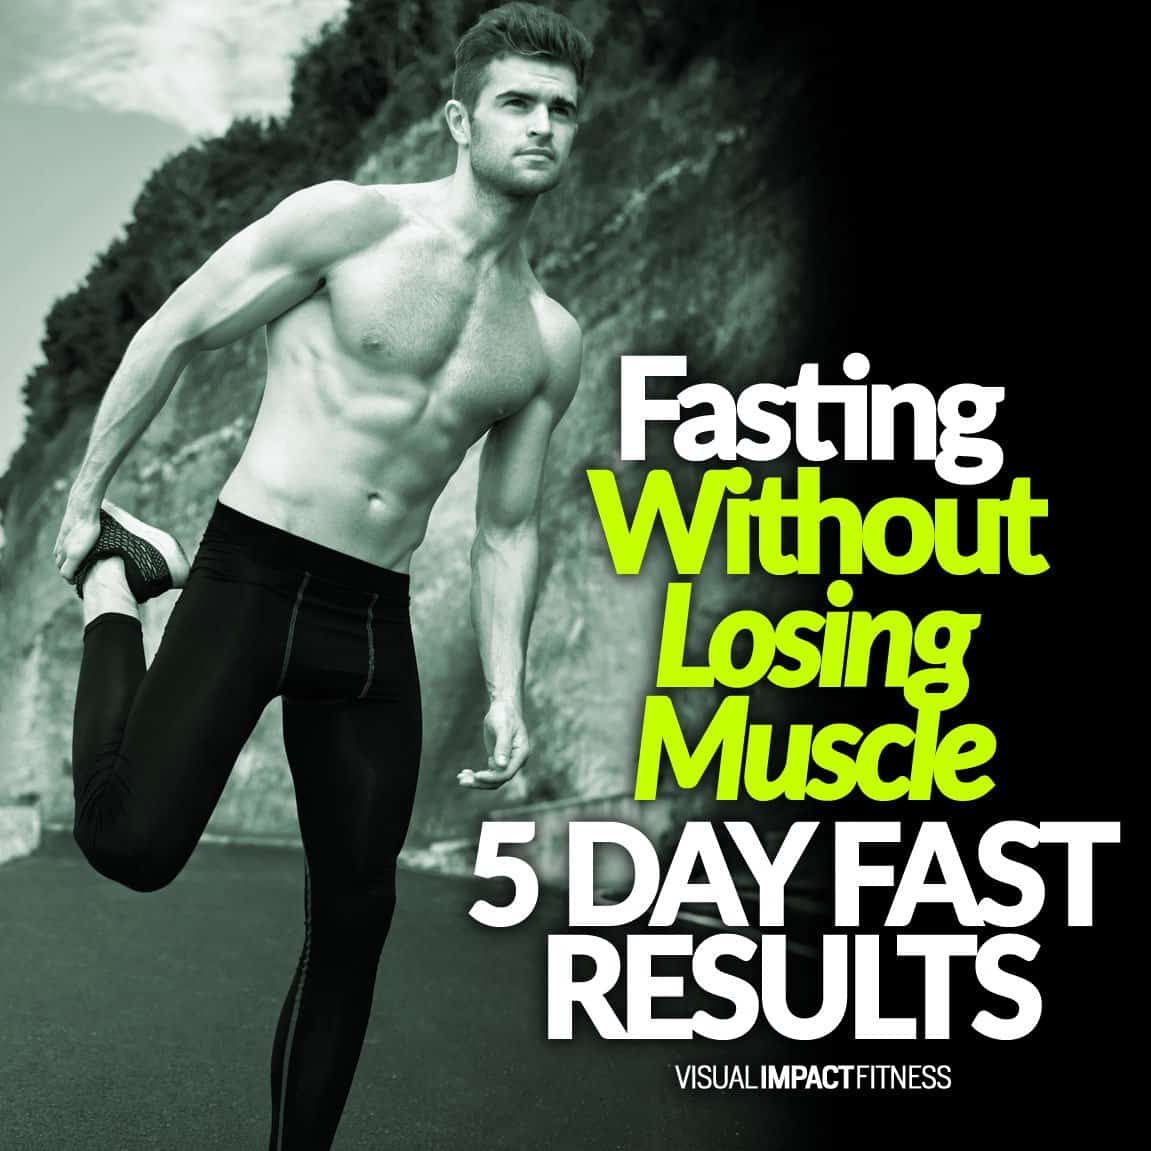 Fasting Without Losing Muscle (5 DAY FAST RESULTS)